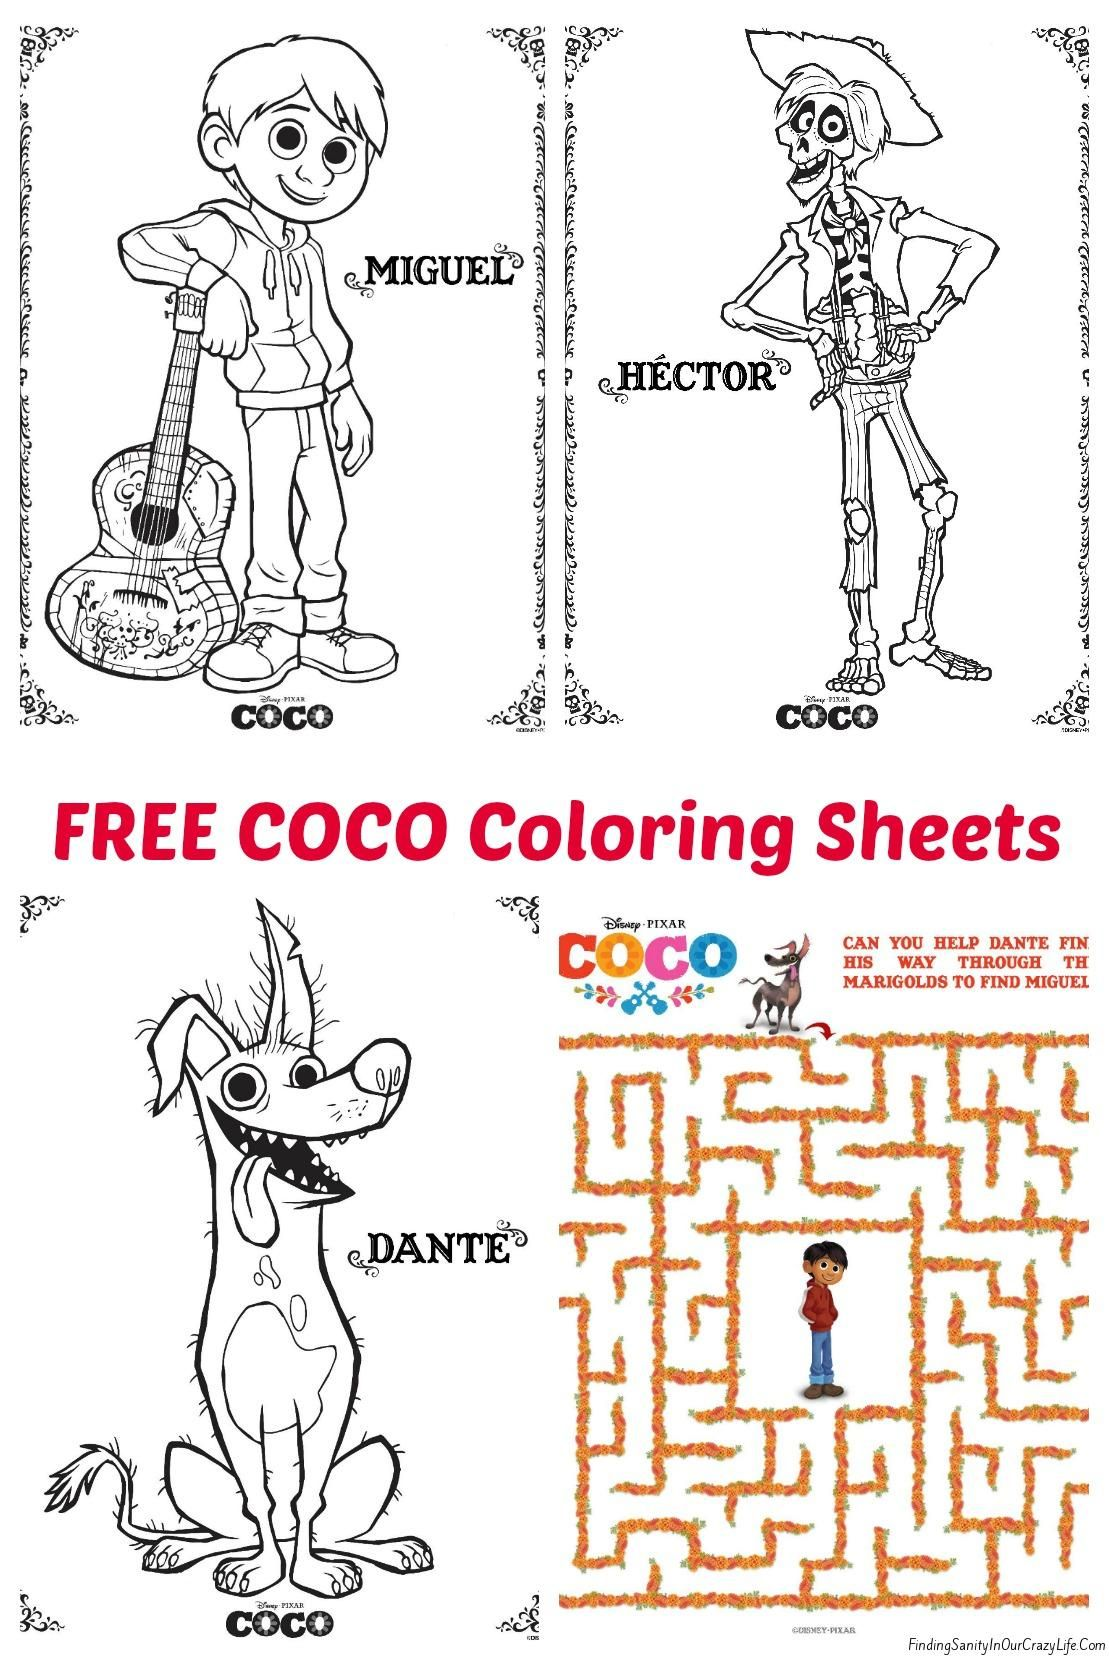 Pixar COCO Coloring Sheets - #PixarCocoEvent | Pinterest | Tiernas ...